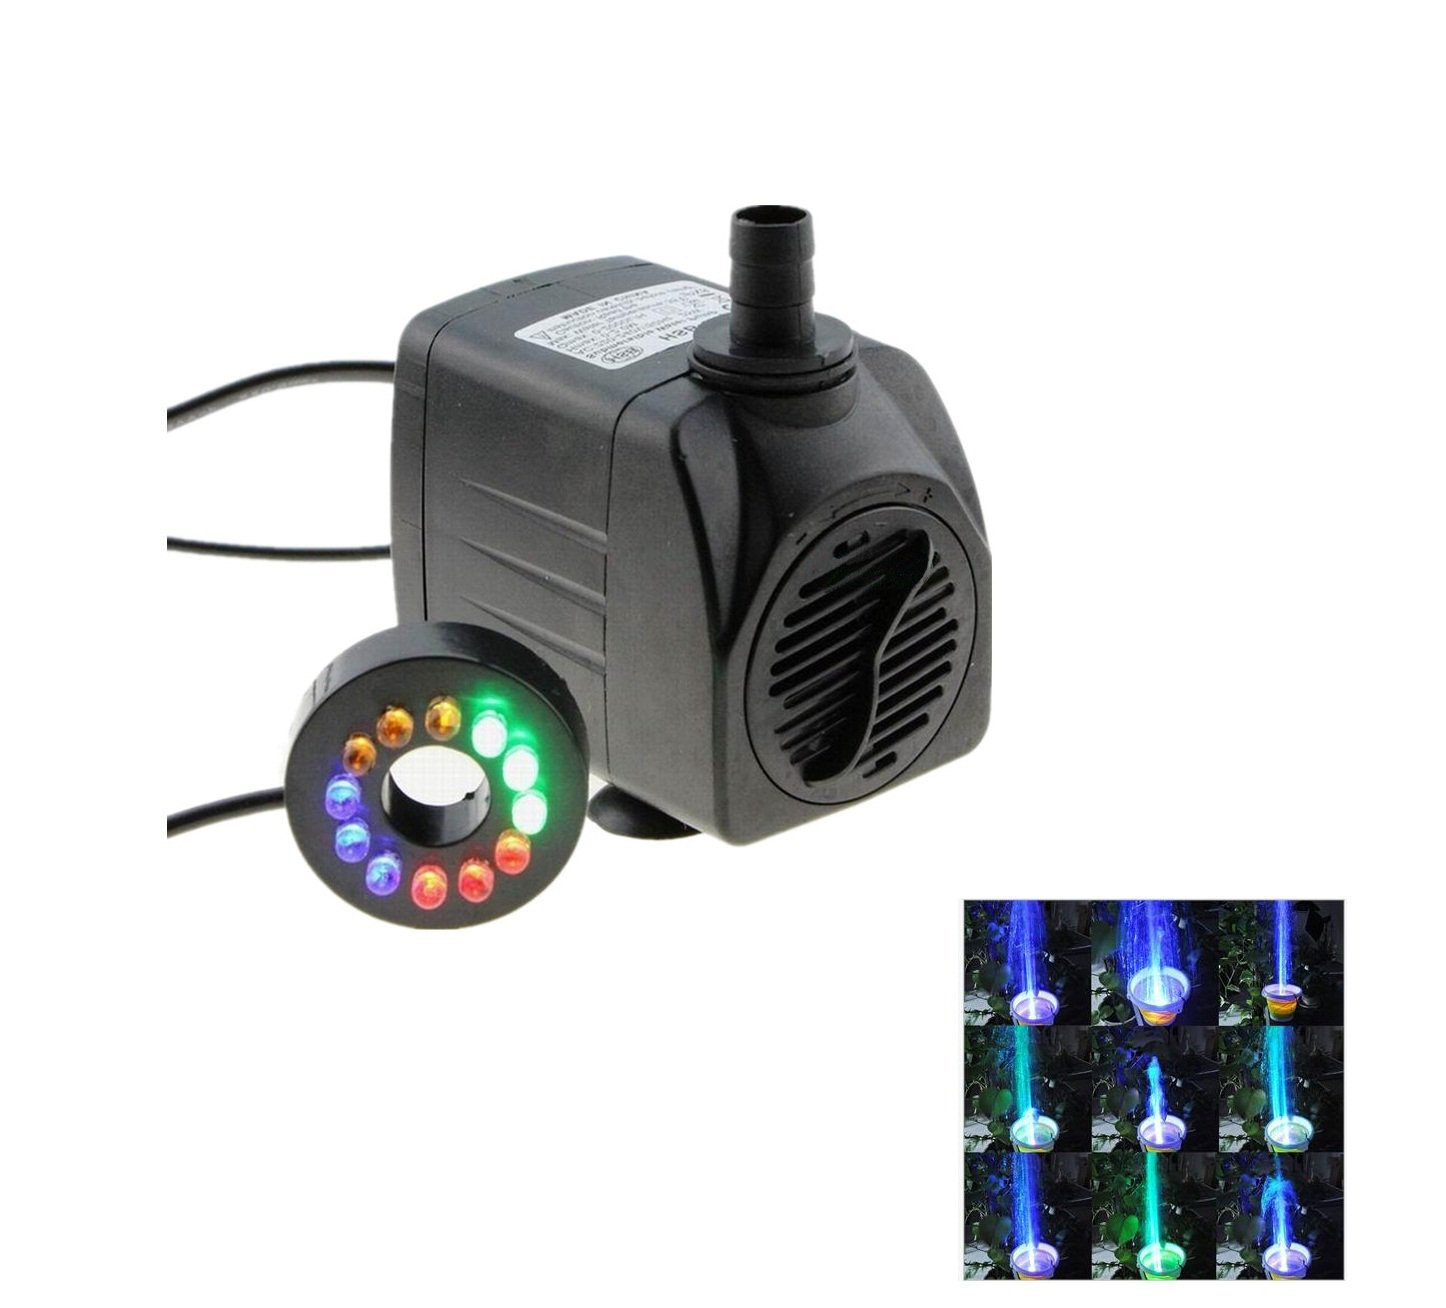 Colorful LED Submersible Pump, with 12 Led Lights 4 Changing Colors Great Night Decaration for Pond, Fountain, Garden, Fish Tank, Aquarium